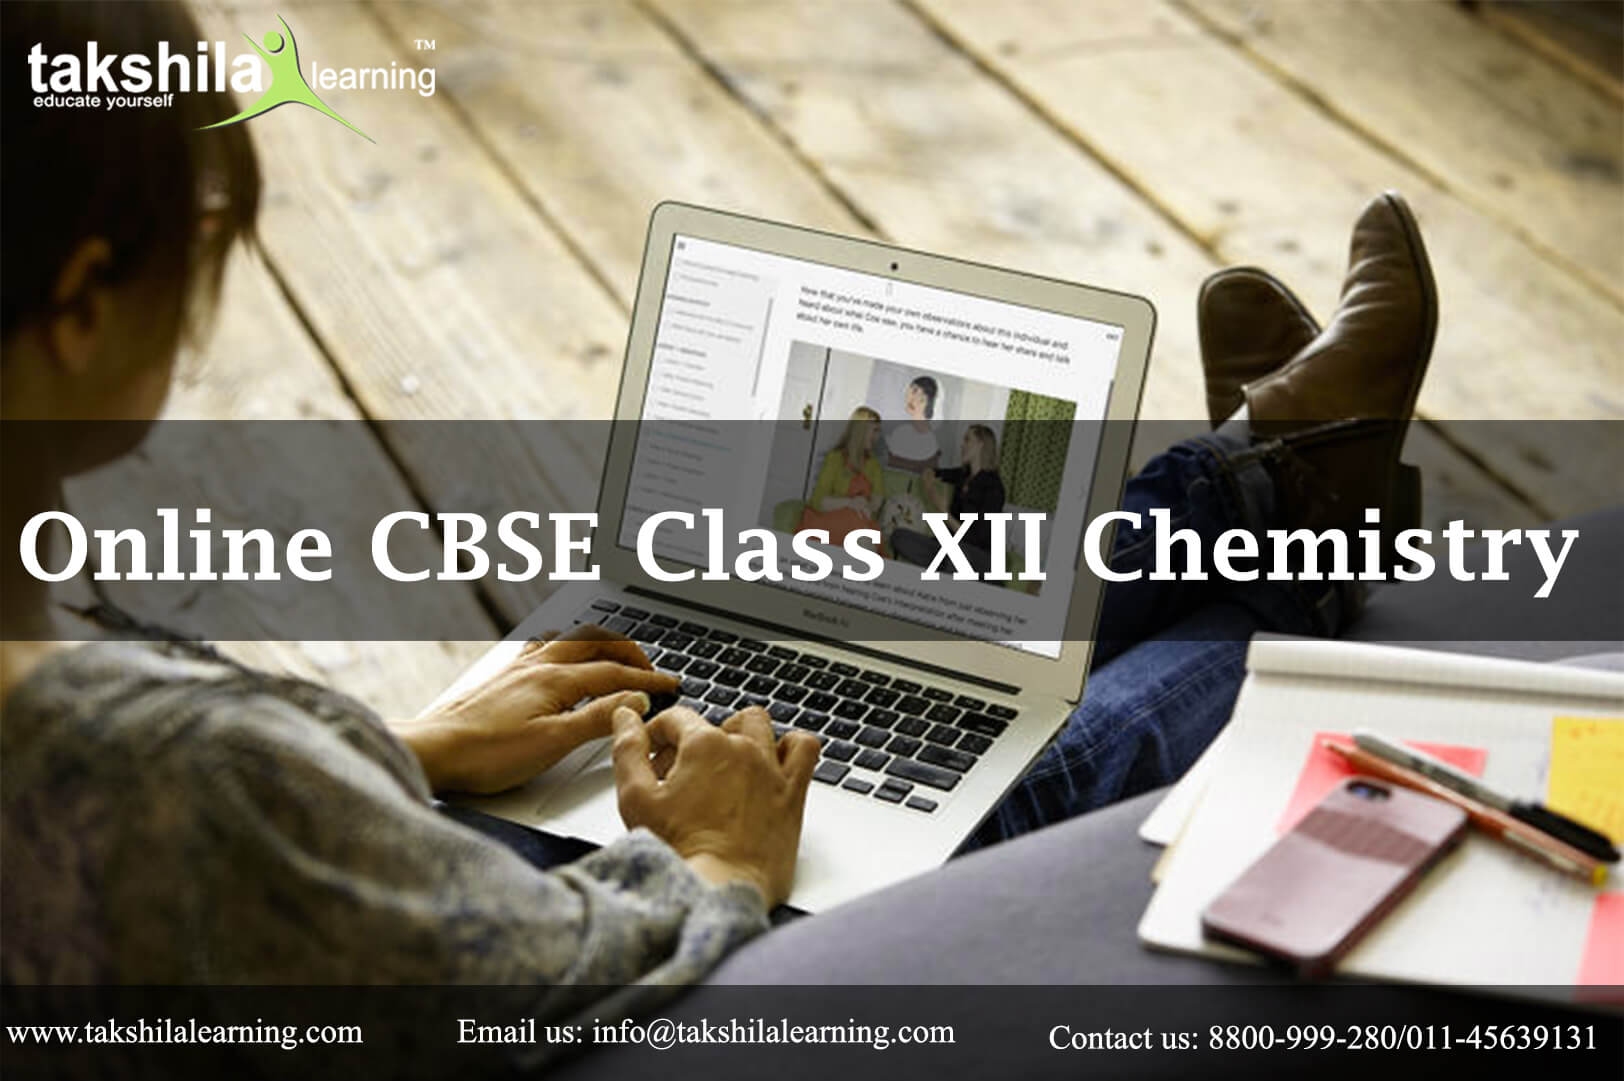 chemistry class 12 Downloads for cbse class 12 chemistry it includes solid state, solutions, electrochemistry, chemical kinetics, surface che etc these downloads are arranged subject-wise and topic-wise.